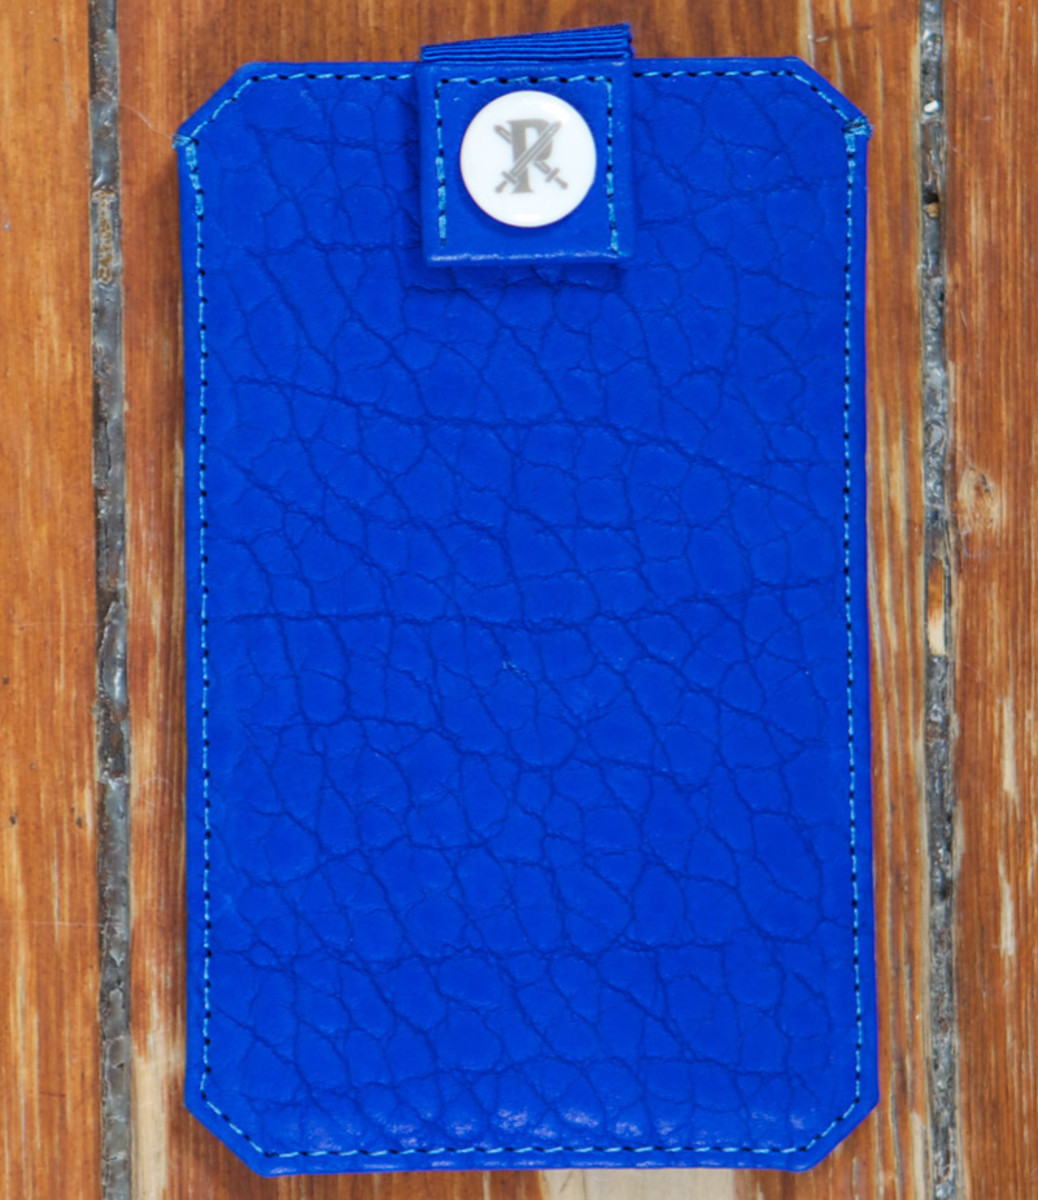 parabellum-fw12-iphone-sleeve-vibrant-blue-1